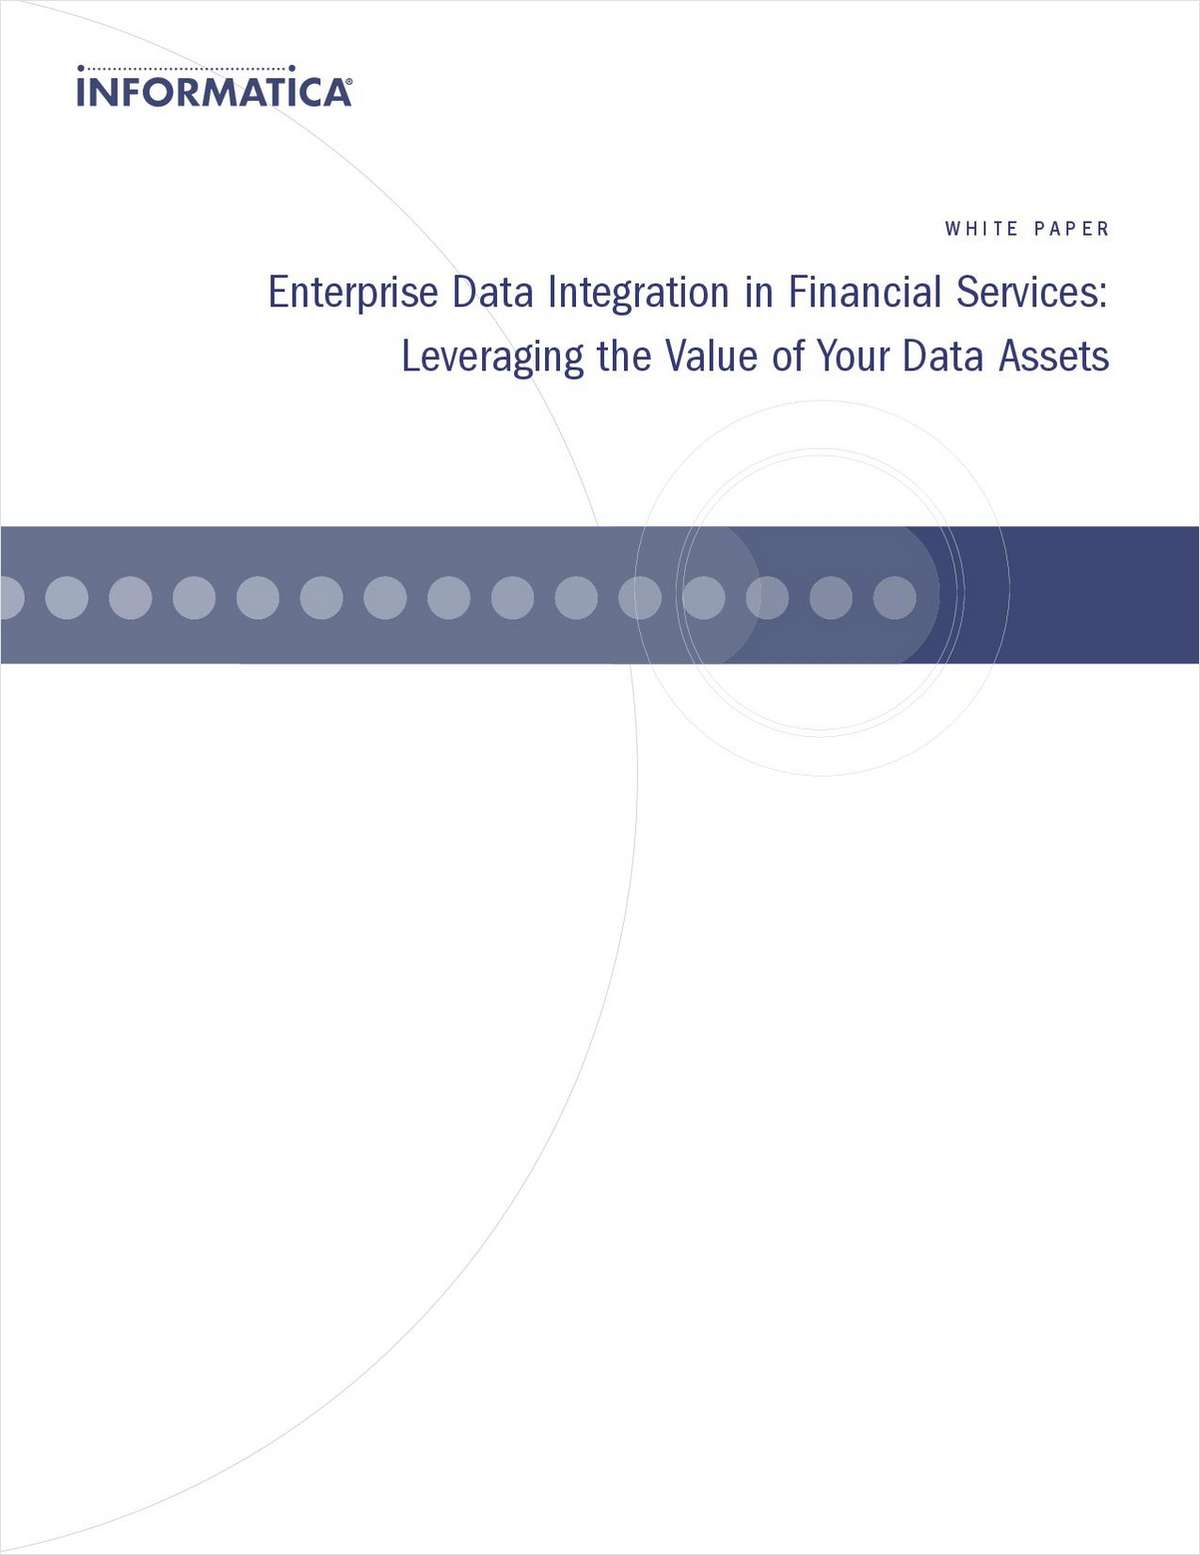 Enterprise Data Integration in Financial Services: Leveraging the Value of Your Data Assets